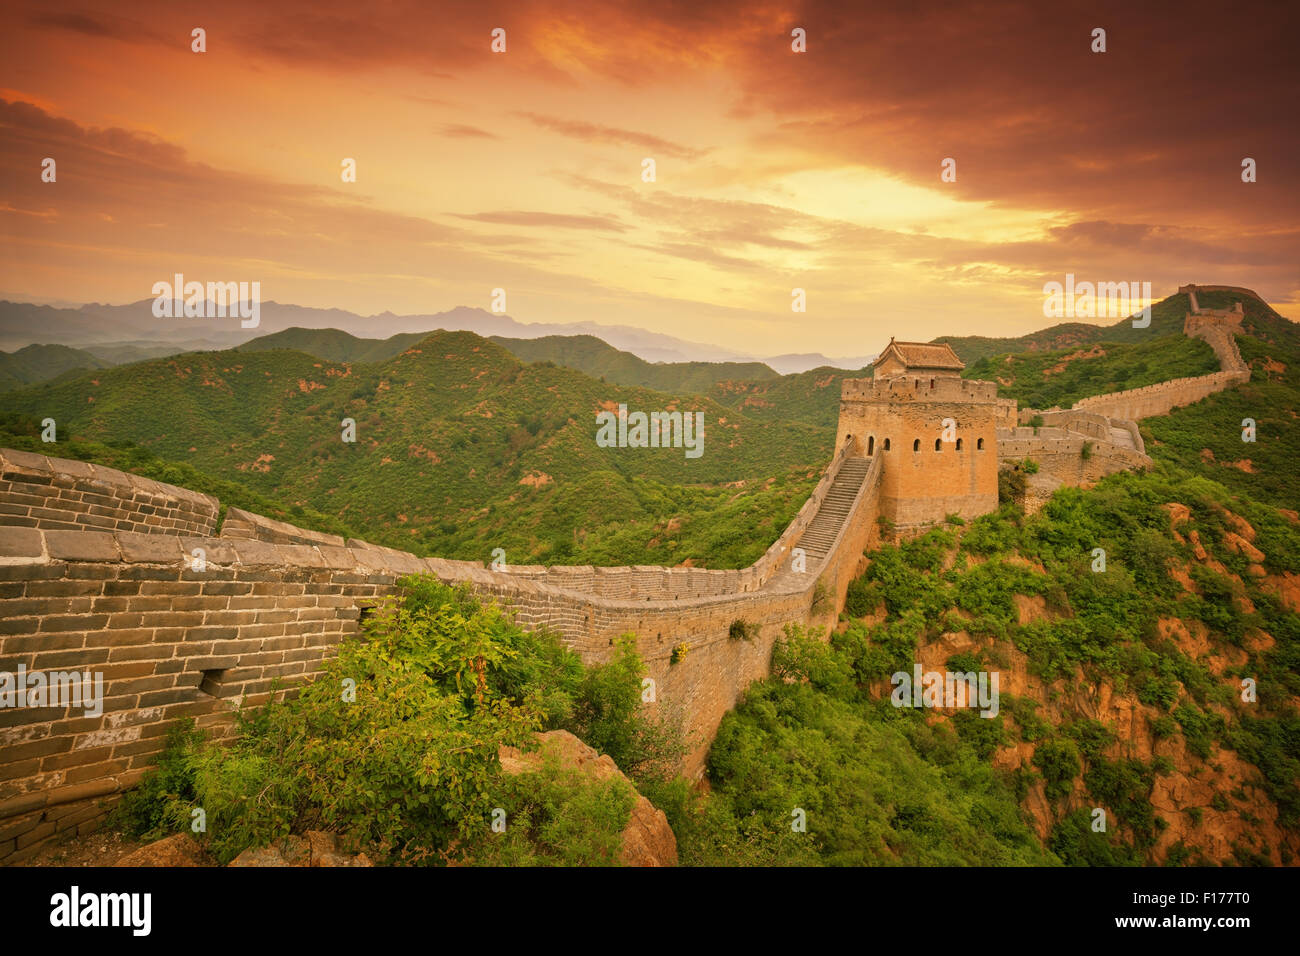 Great Wall of China at Sunrise Stock Photo